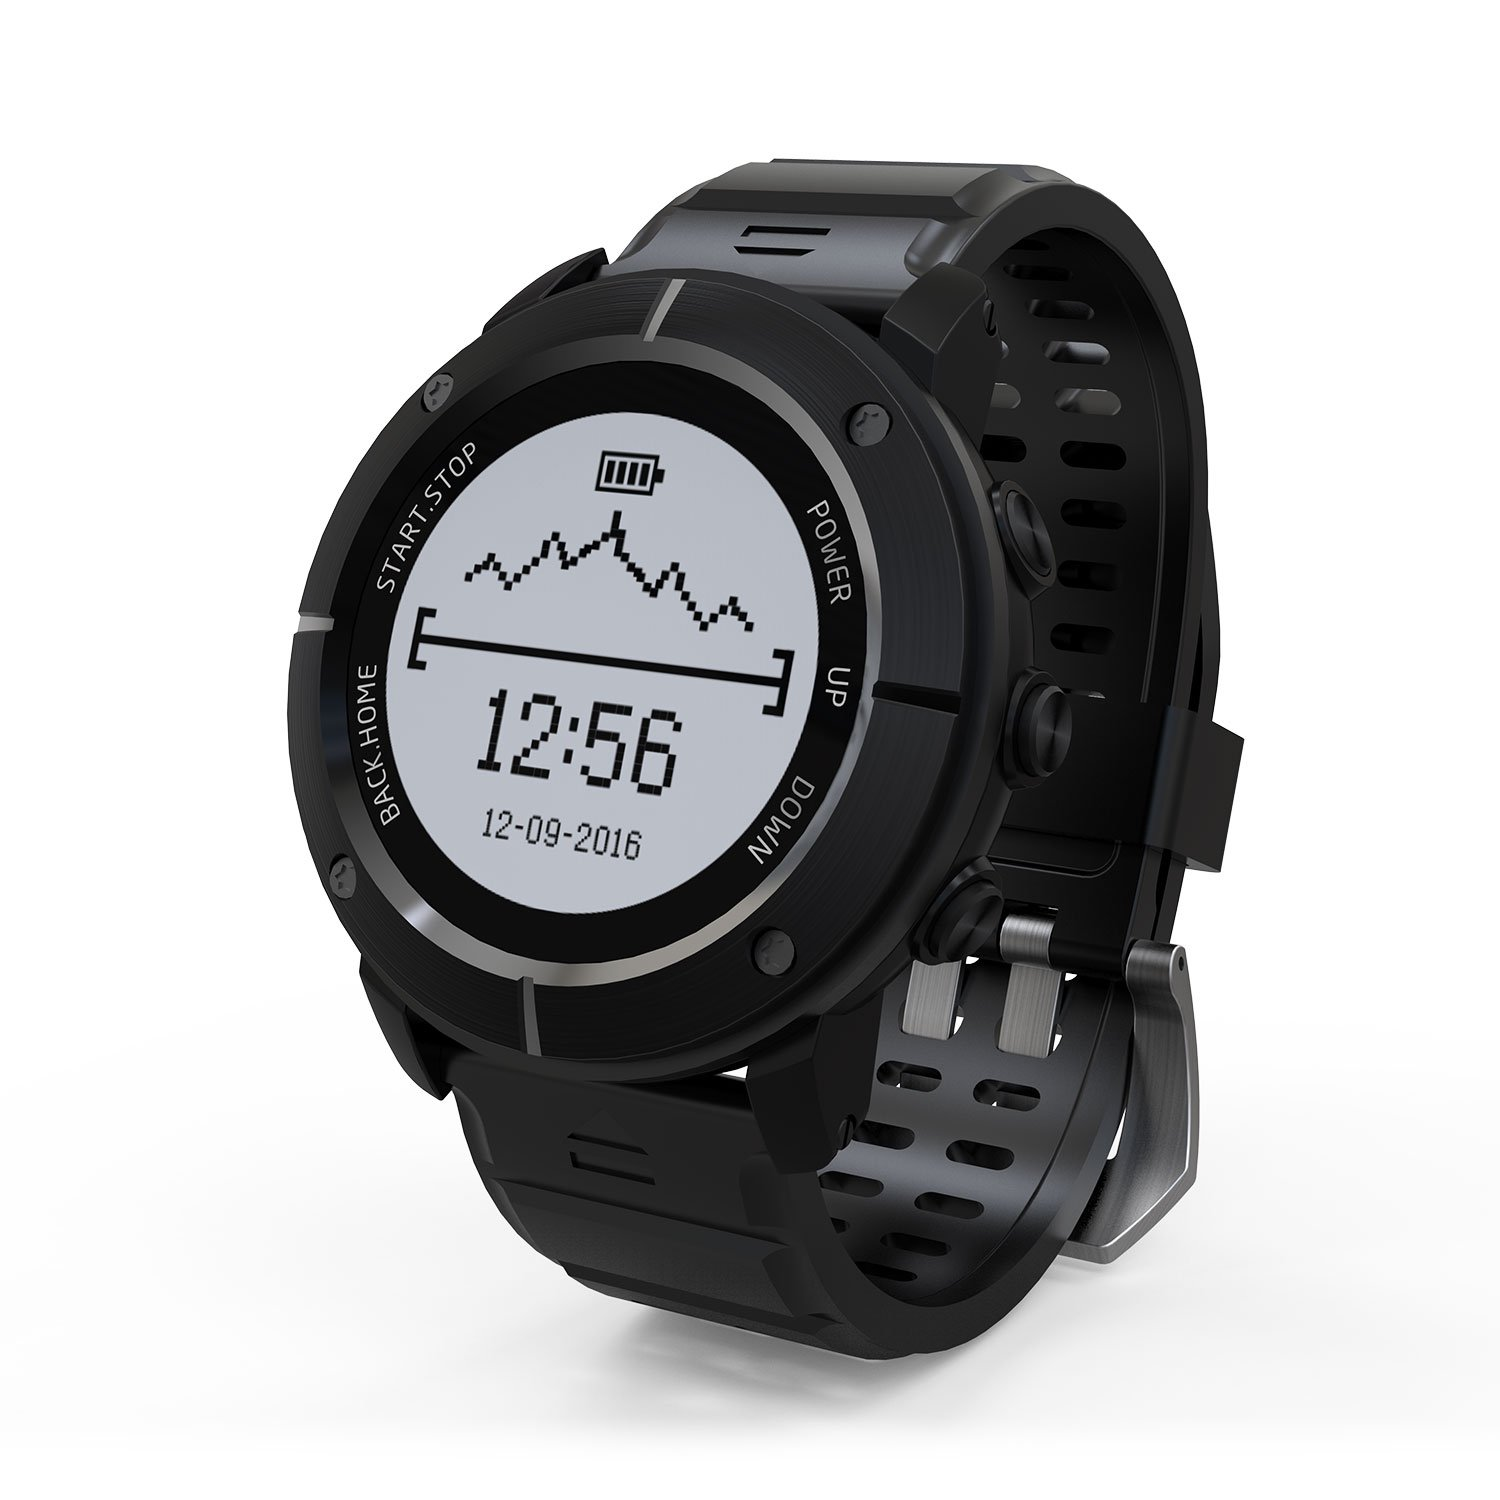 HAMSWAN Sport Watch, UW80 GPS Smart Watch IP68 Waterproof Running Watch Bluetooth Fitness Tracker with 11 Sports Mode Dynamic Heartbeat Rate for Outdoor Enthusiasts/Explorers (Black)